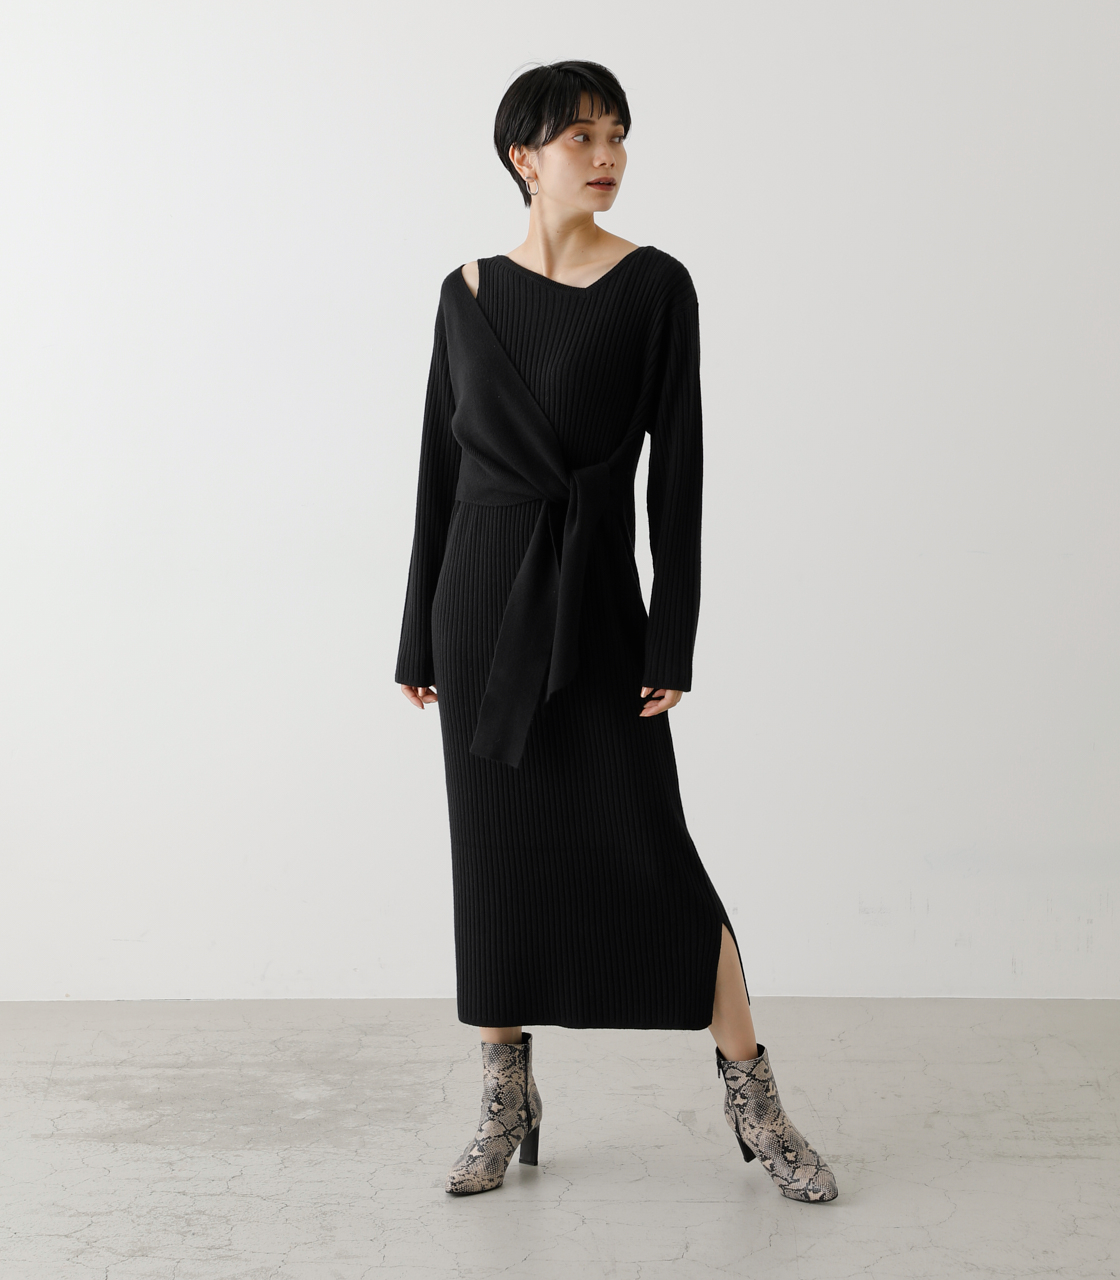 FRONT LINK ASYMMETRY KNIT OP/フロントリンクアシンメトリーニットワンピース【MOOK53掲載 90004】 詳細画像 BLK 1